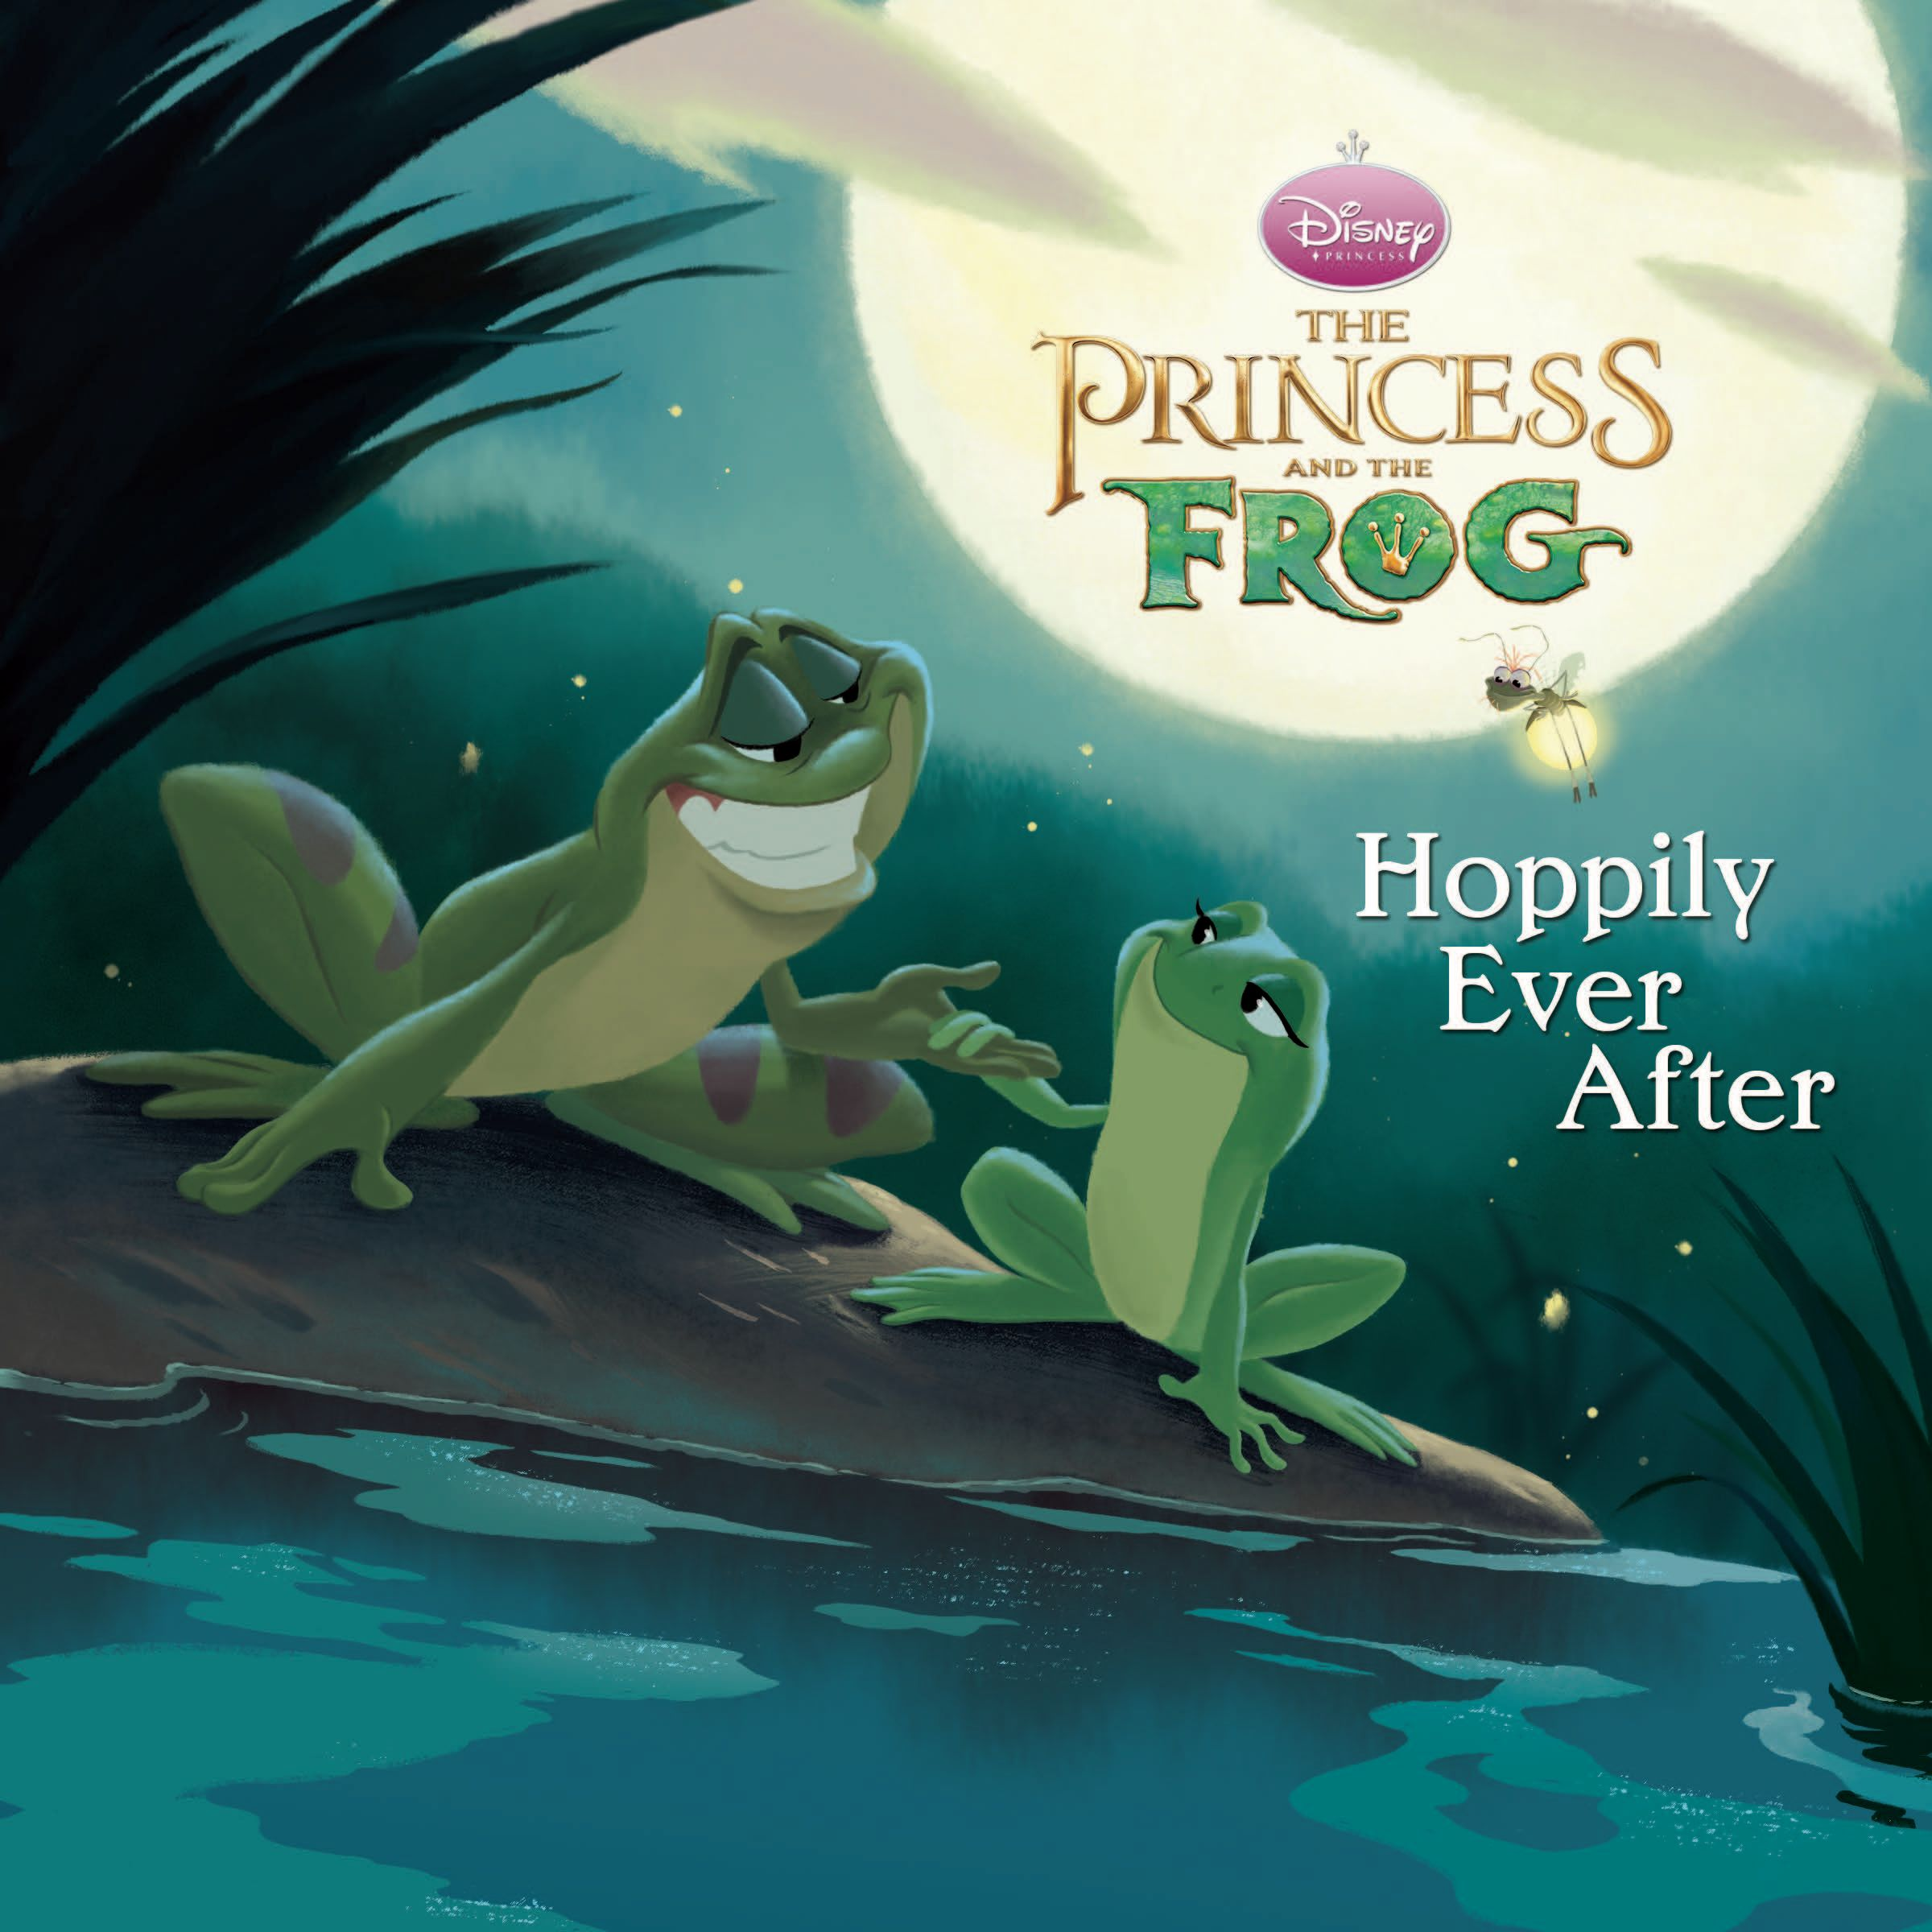 The Princess And The Frog Hoppily Ever After Disney The Princess Frog Book